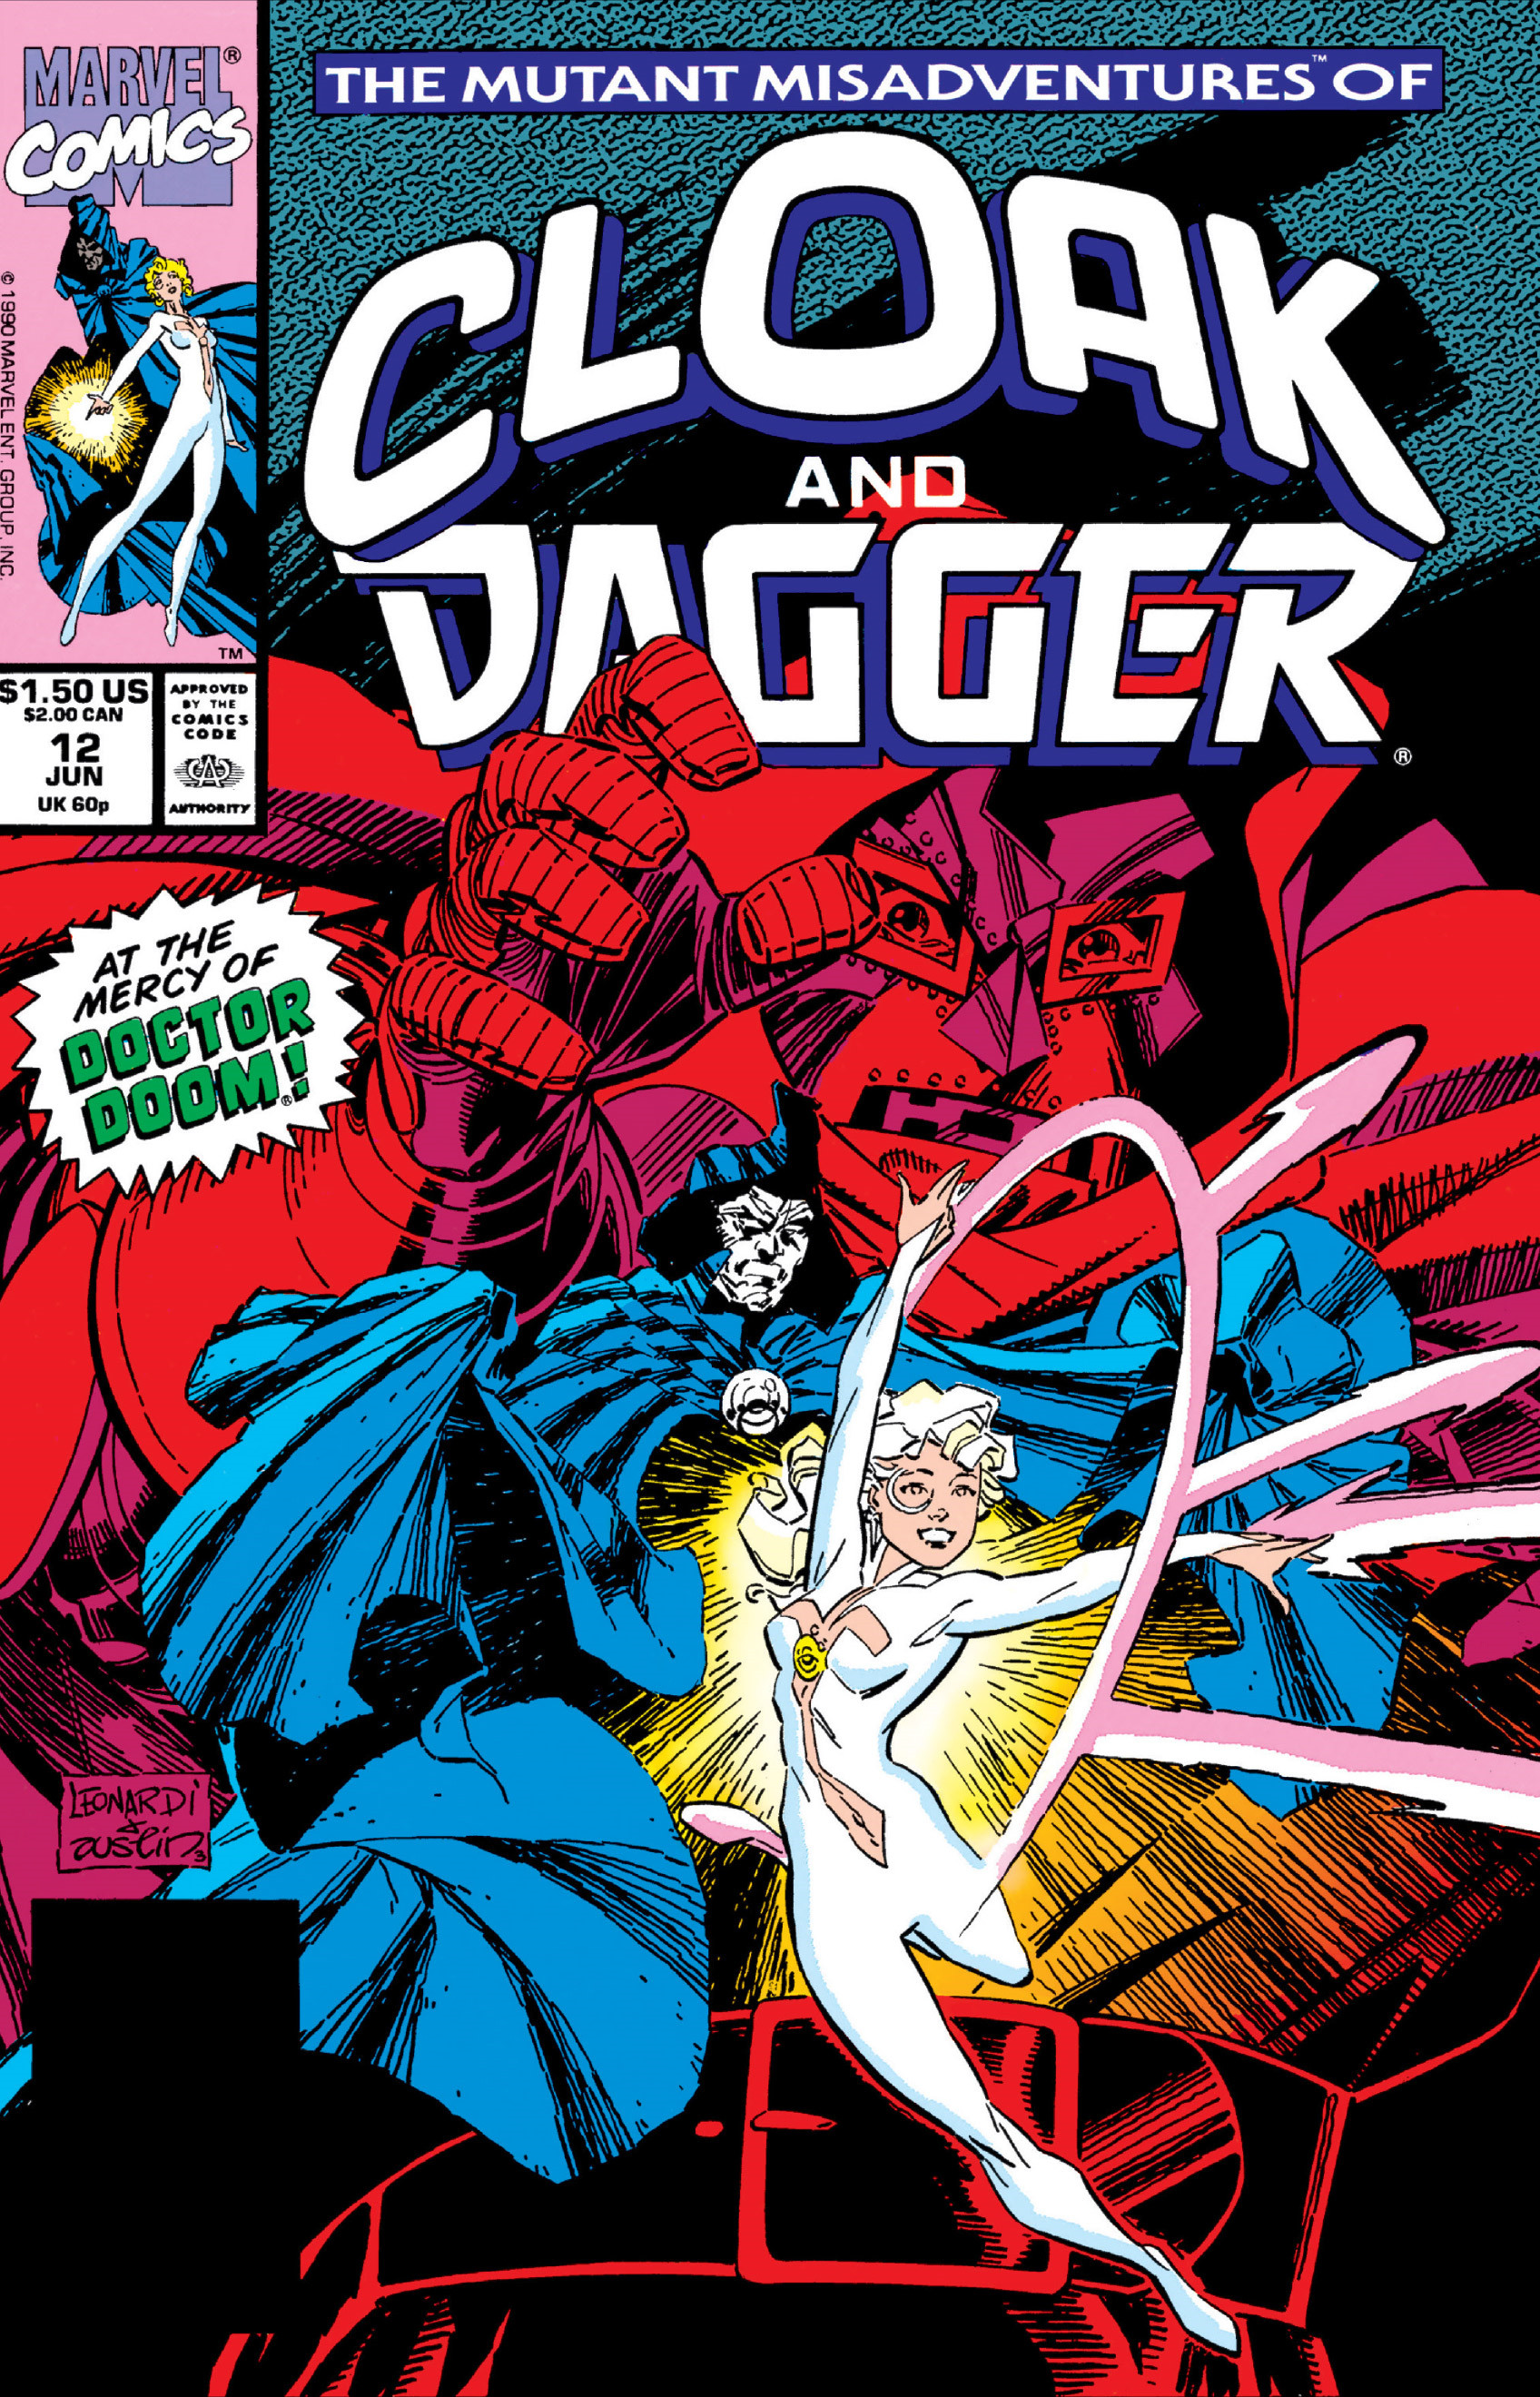 Mutant Misadventures of Cloak and Dagger Vol 1 12